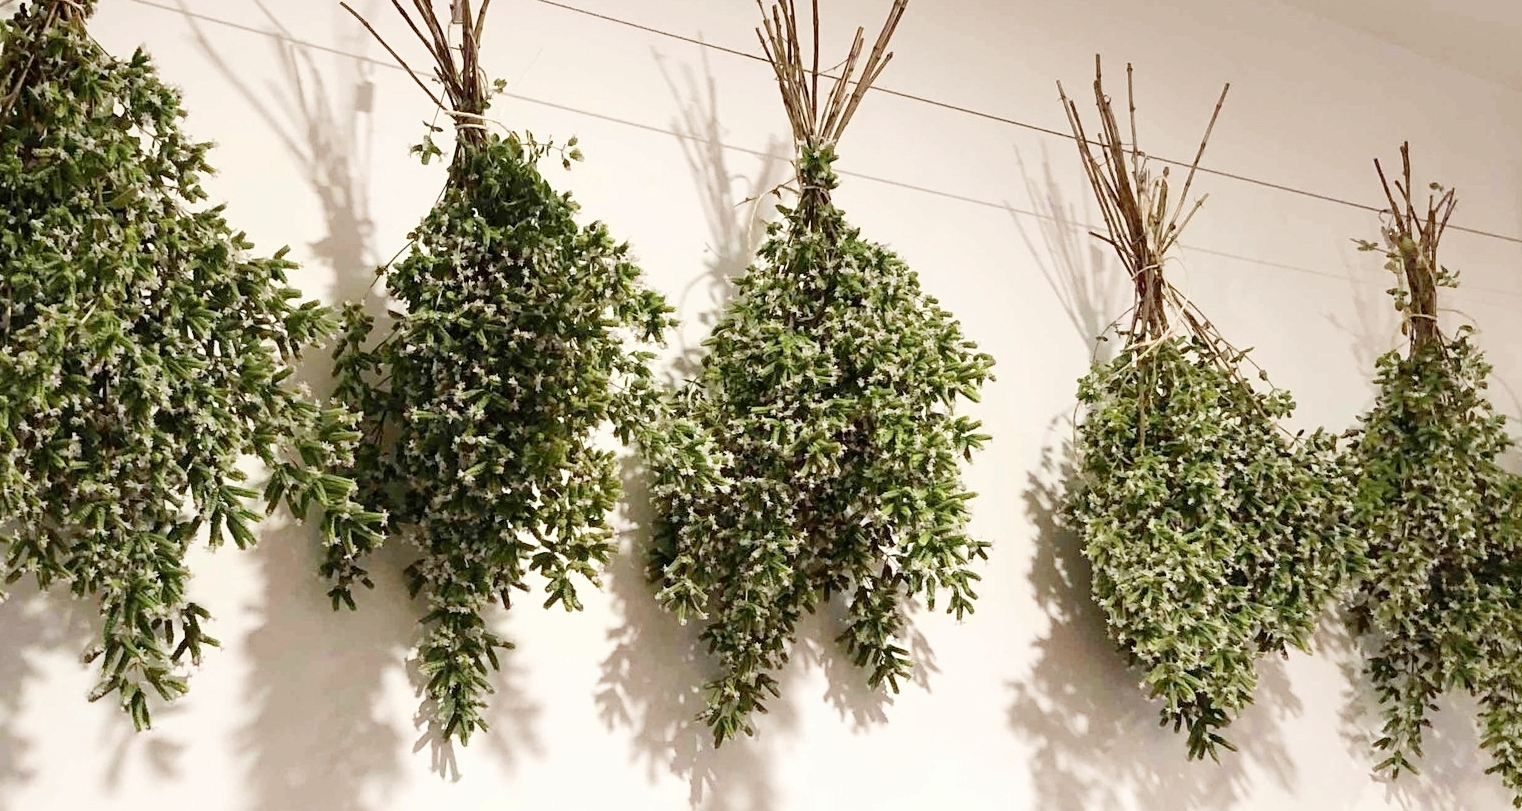 Bundle them up in small batches and hang to dry for a week or two.